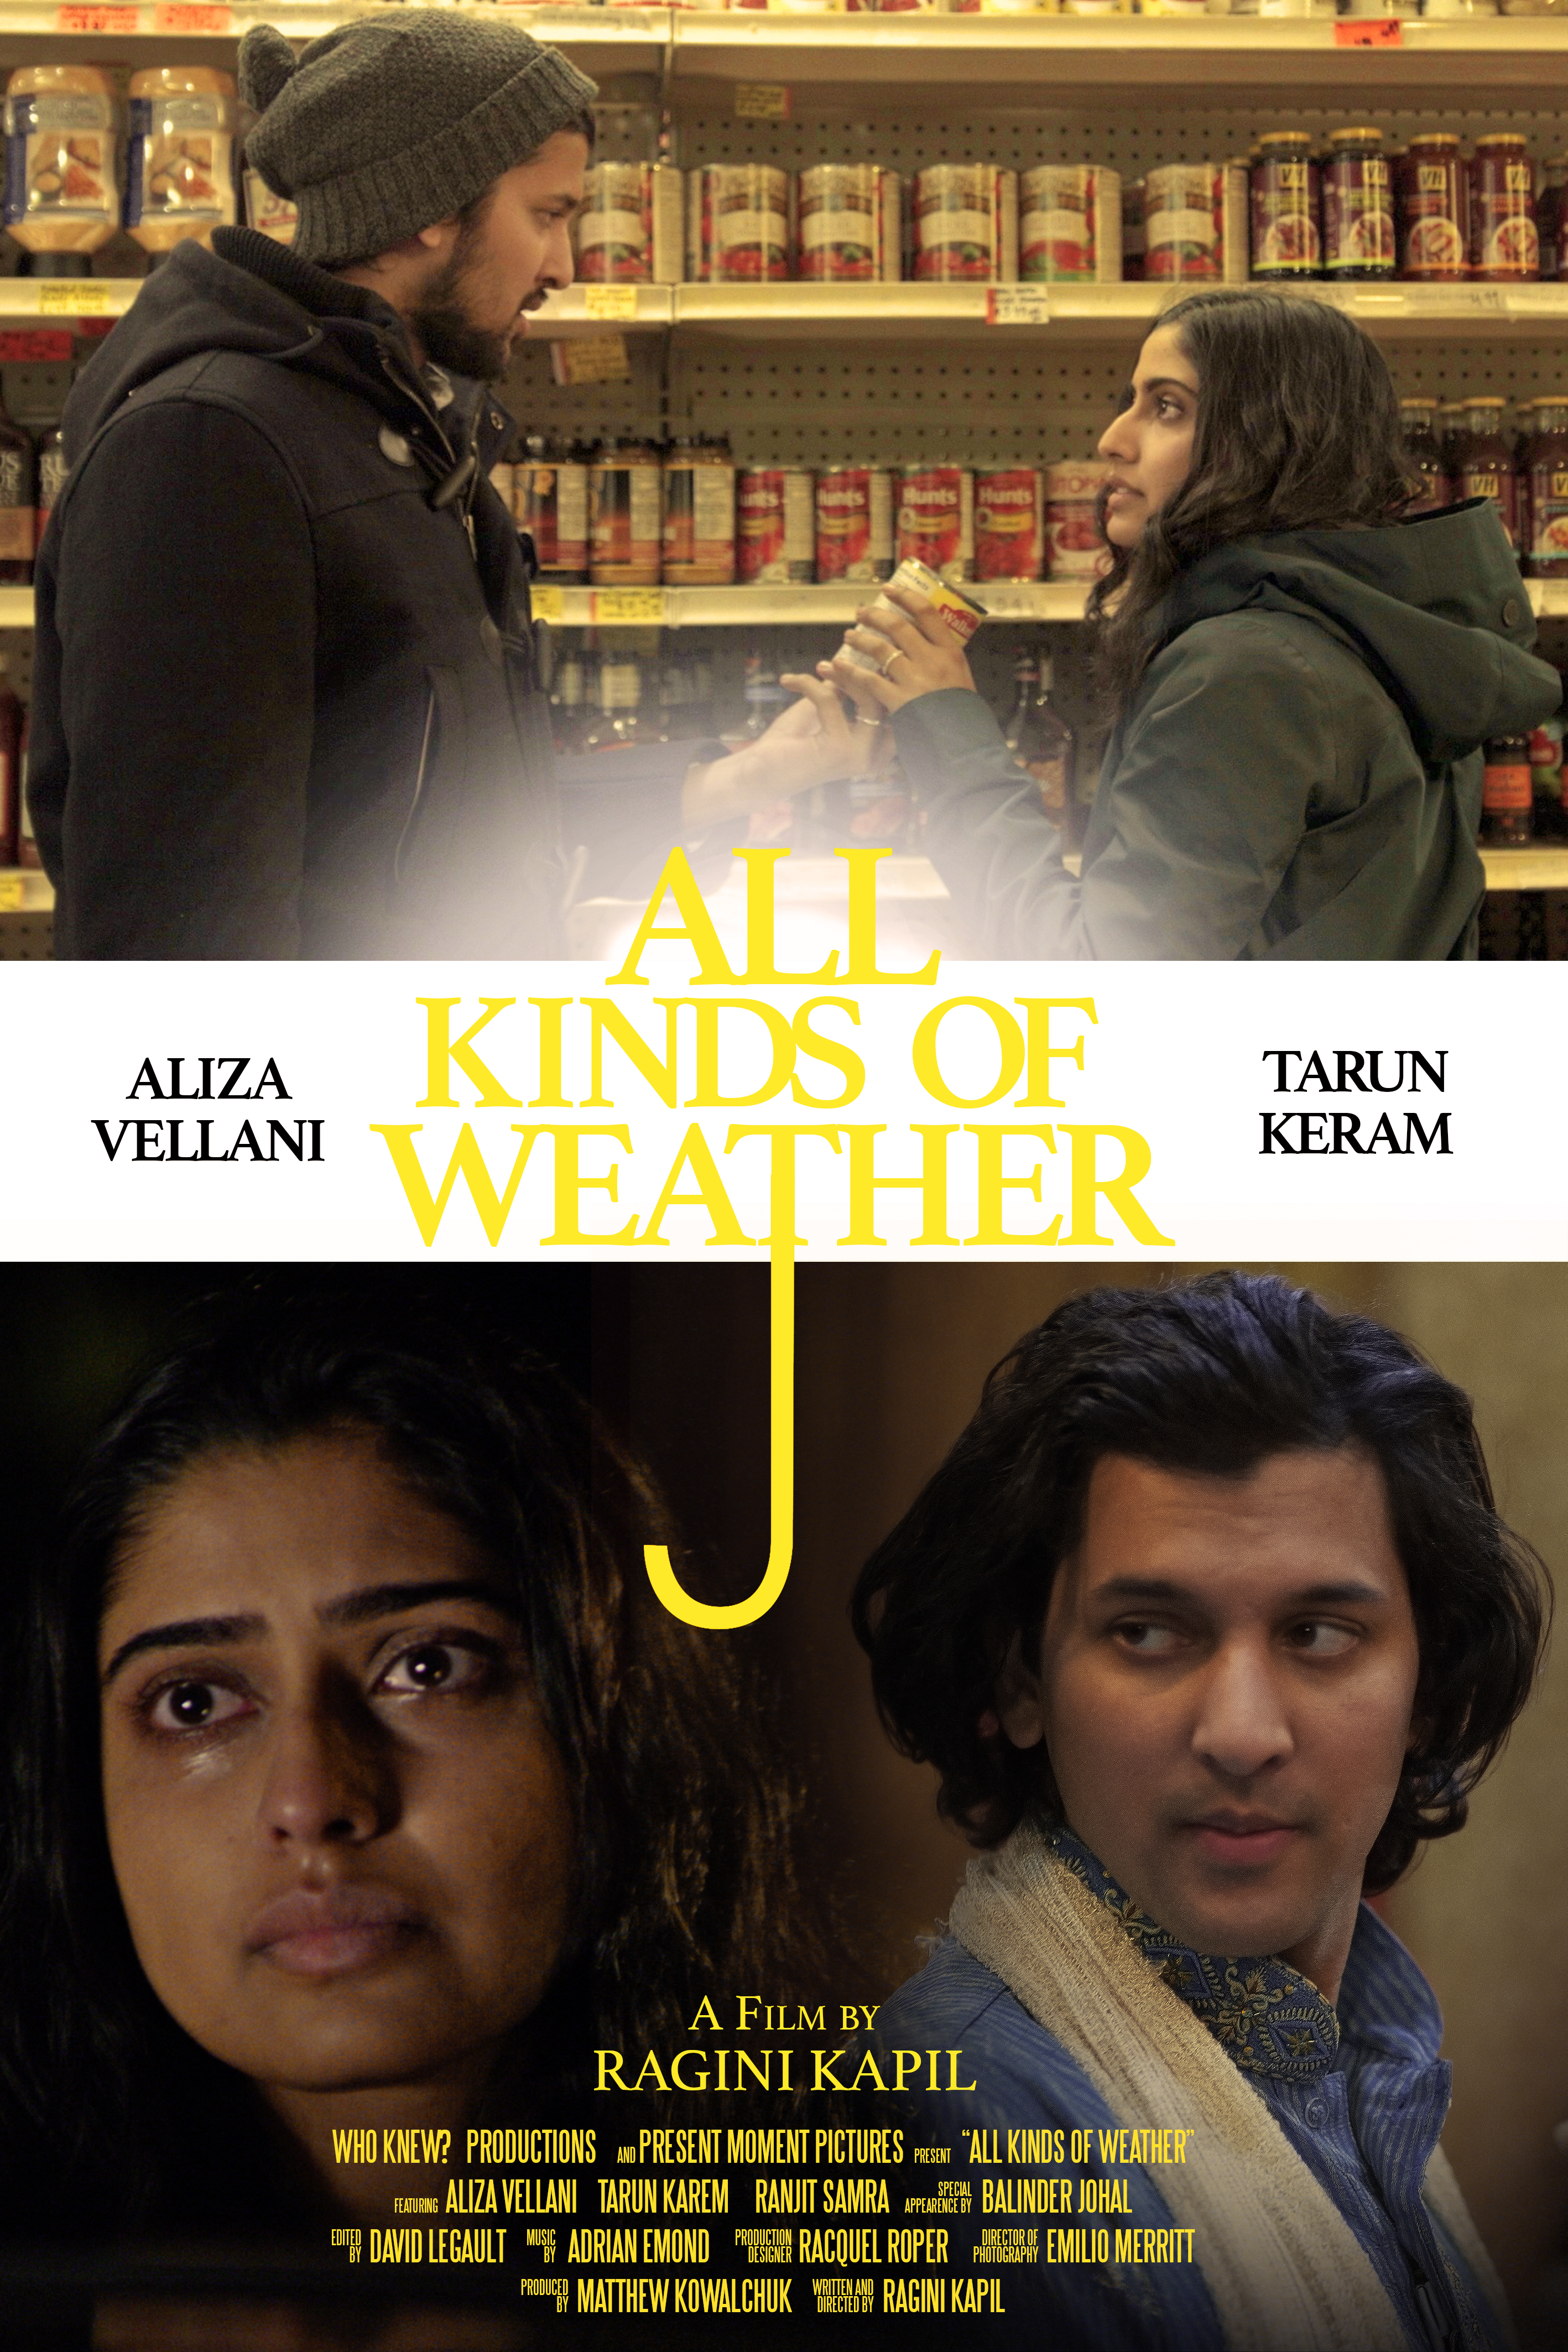 All Kinds of Weather (2018) - IMDb